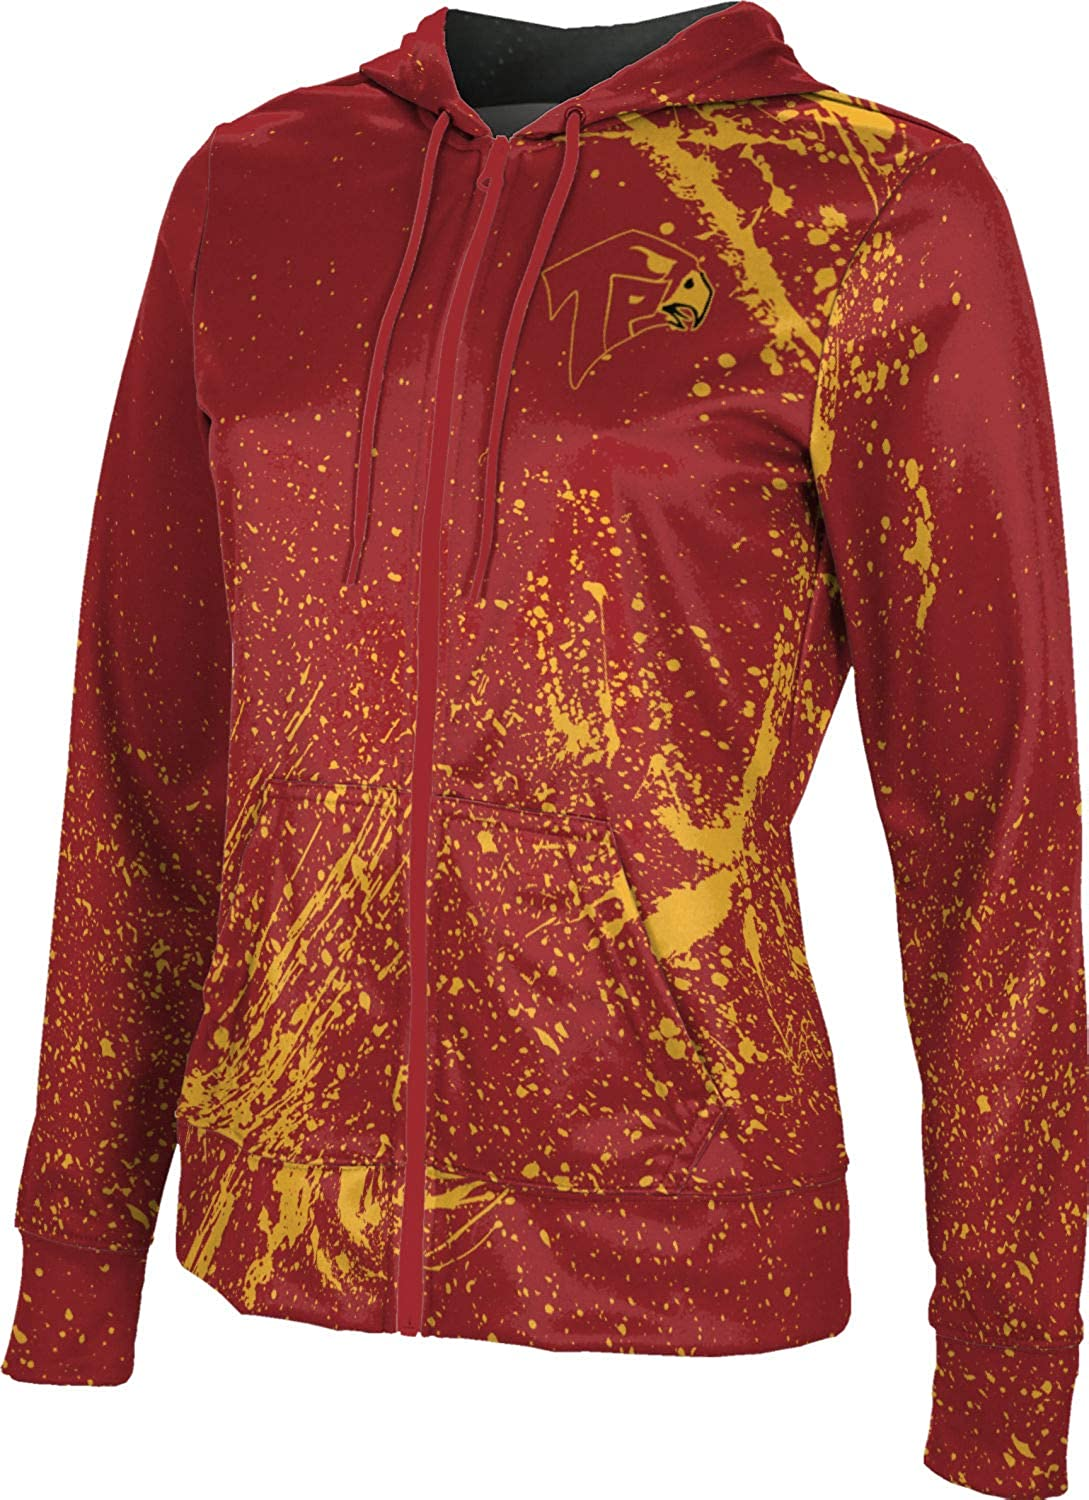 ProSphere Torrey Pines High Women's Hoodie School Zipper Columbus Courier shipping free shipping Mall